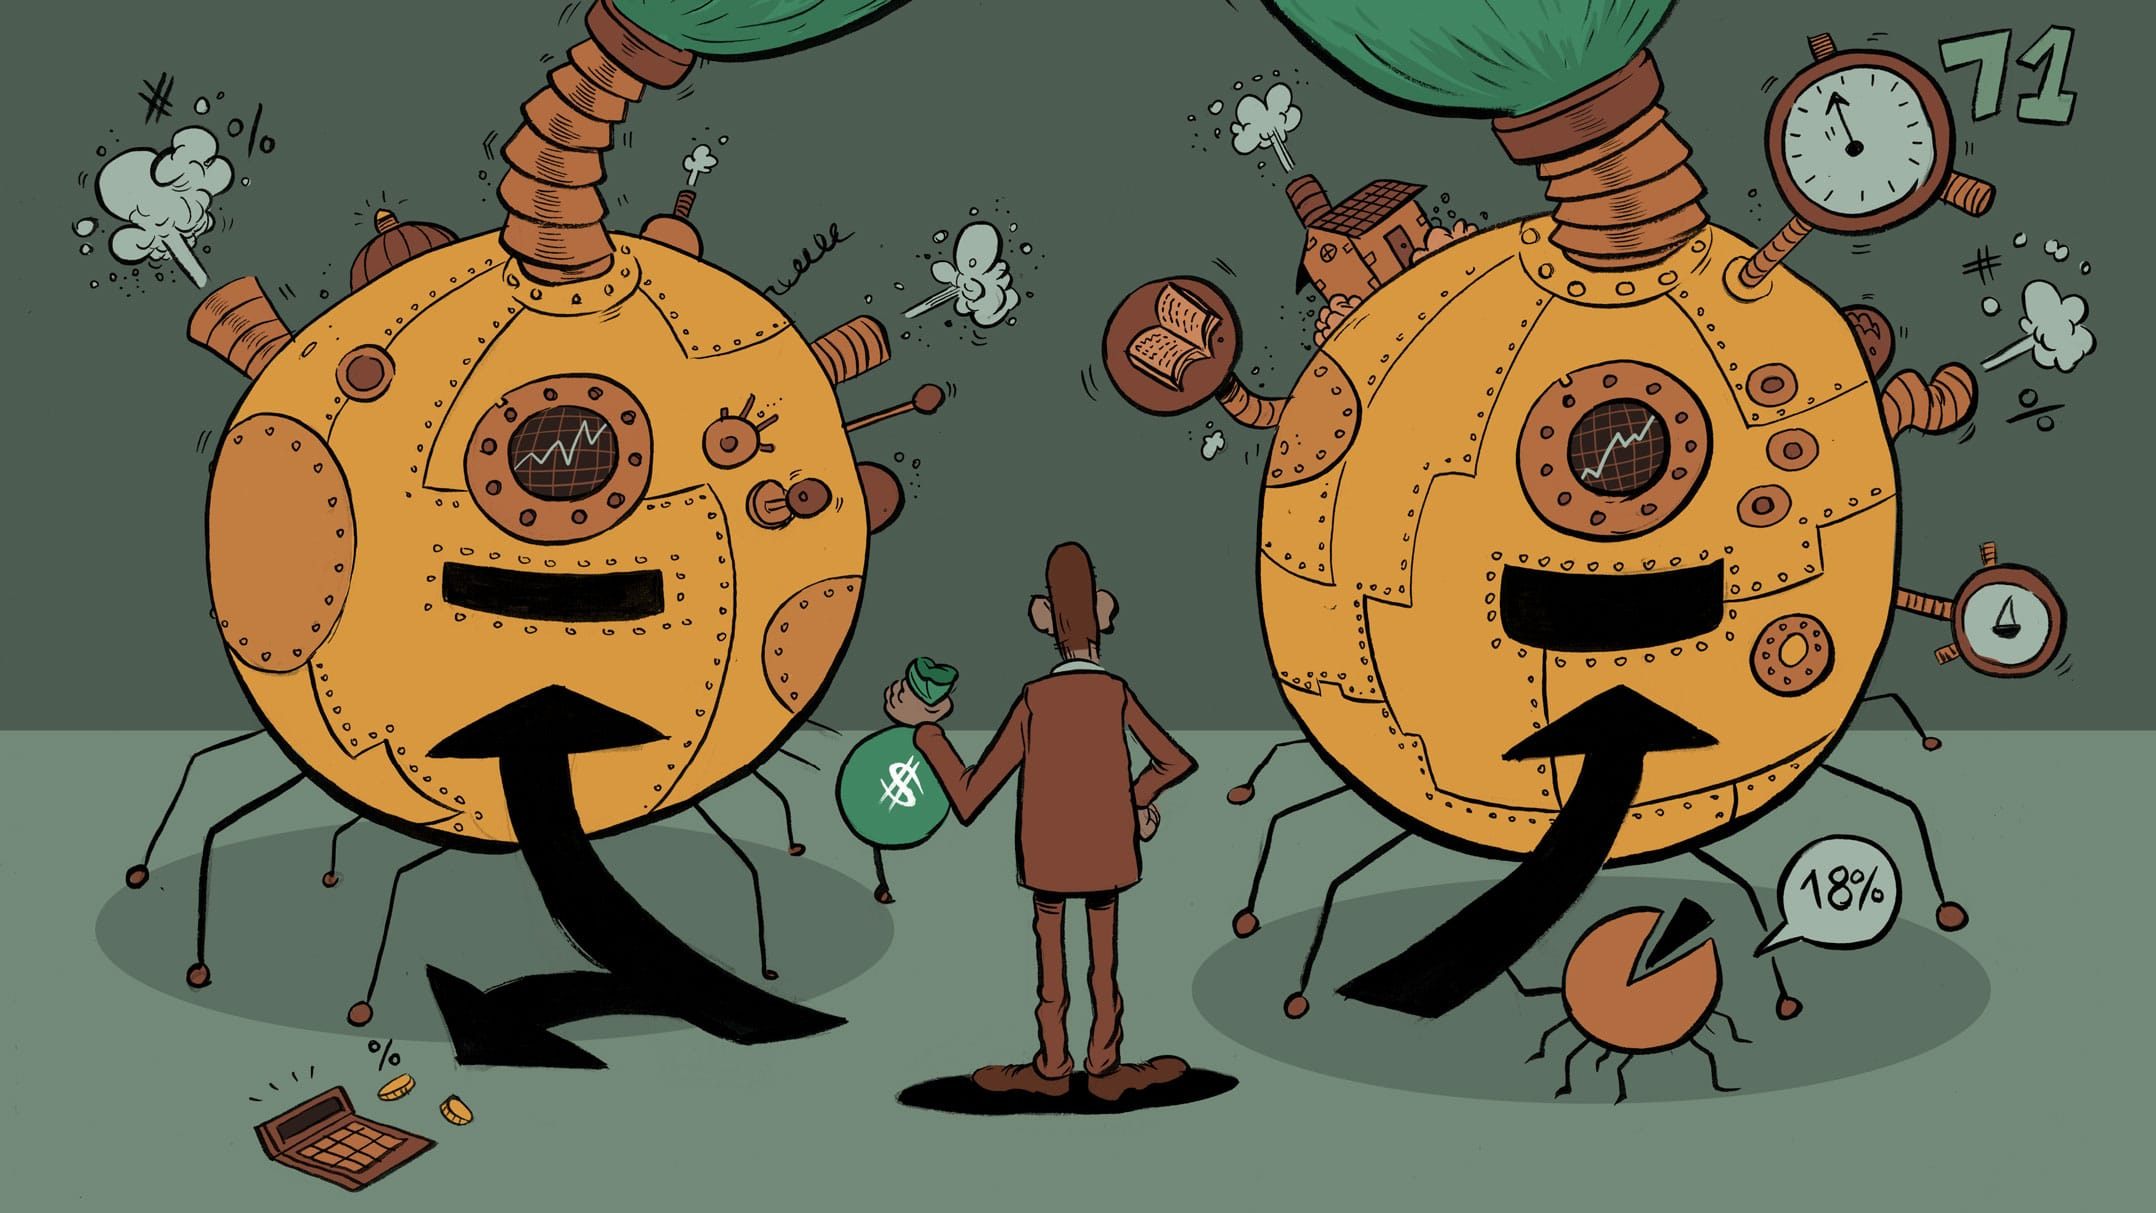 An illustration showing a person choosing between TFSA and RRSP as a way of growing his money.